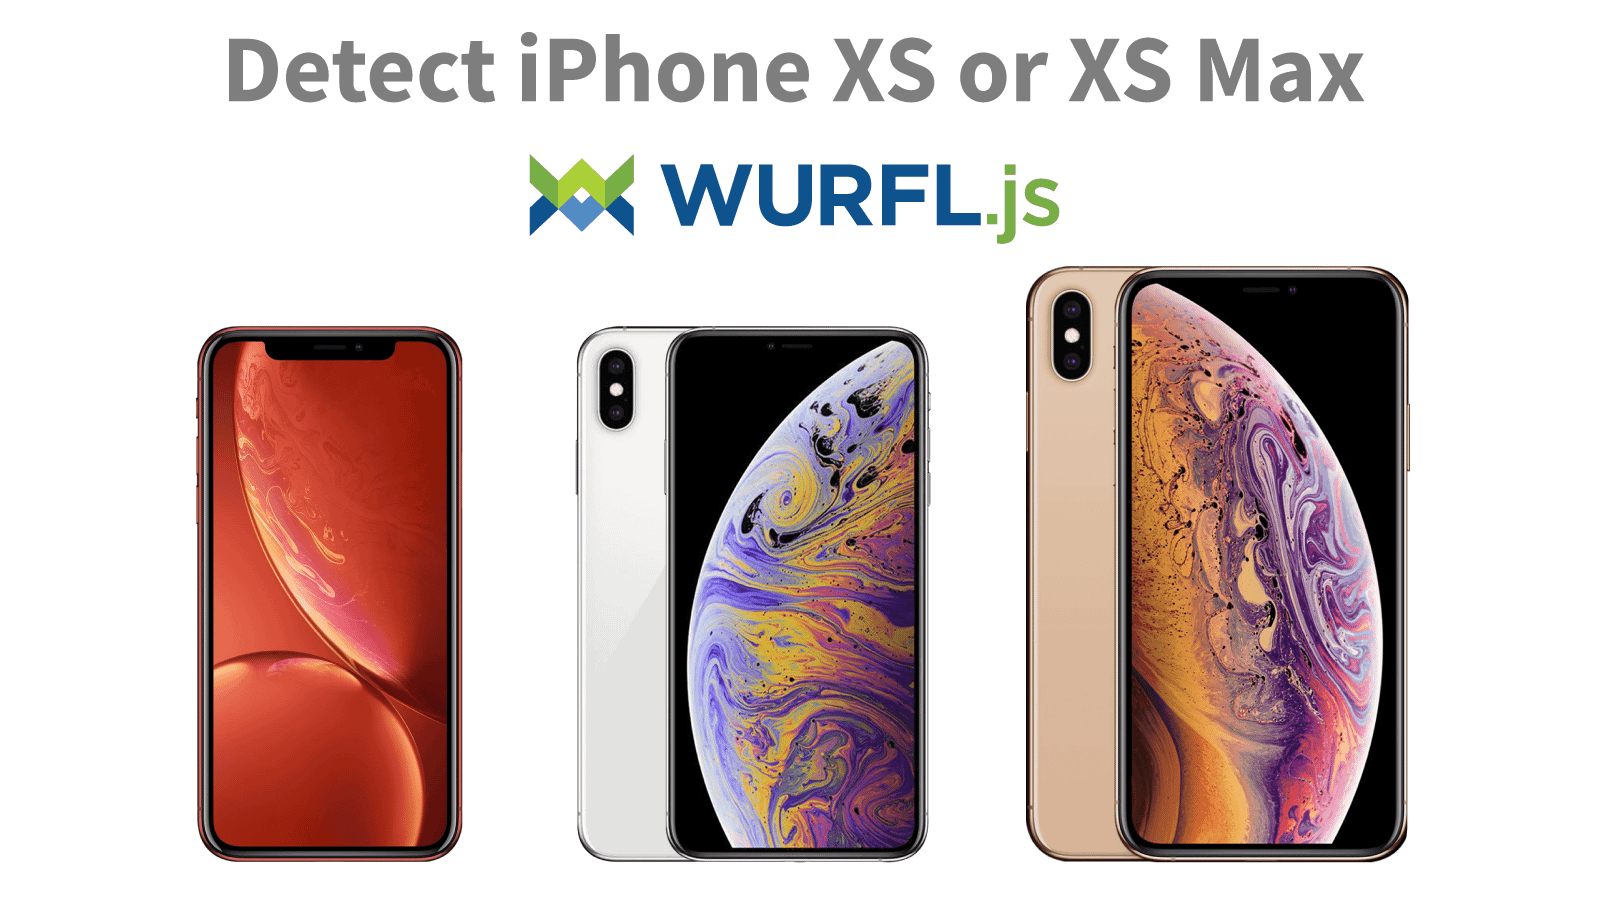 Detect iPhone XS Max WURFLjs